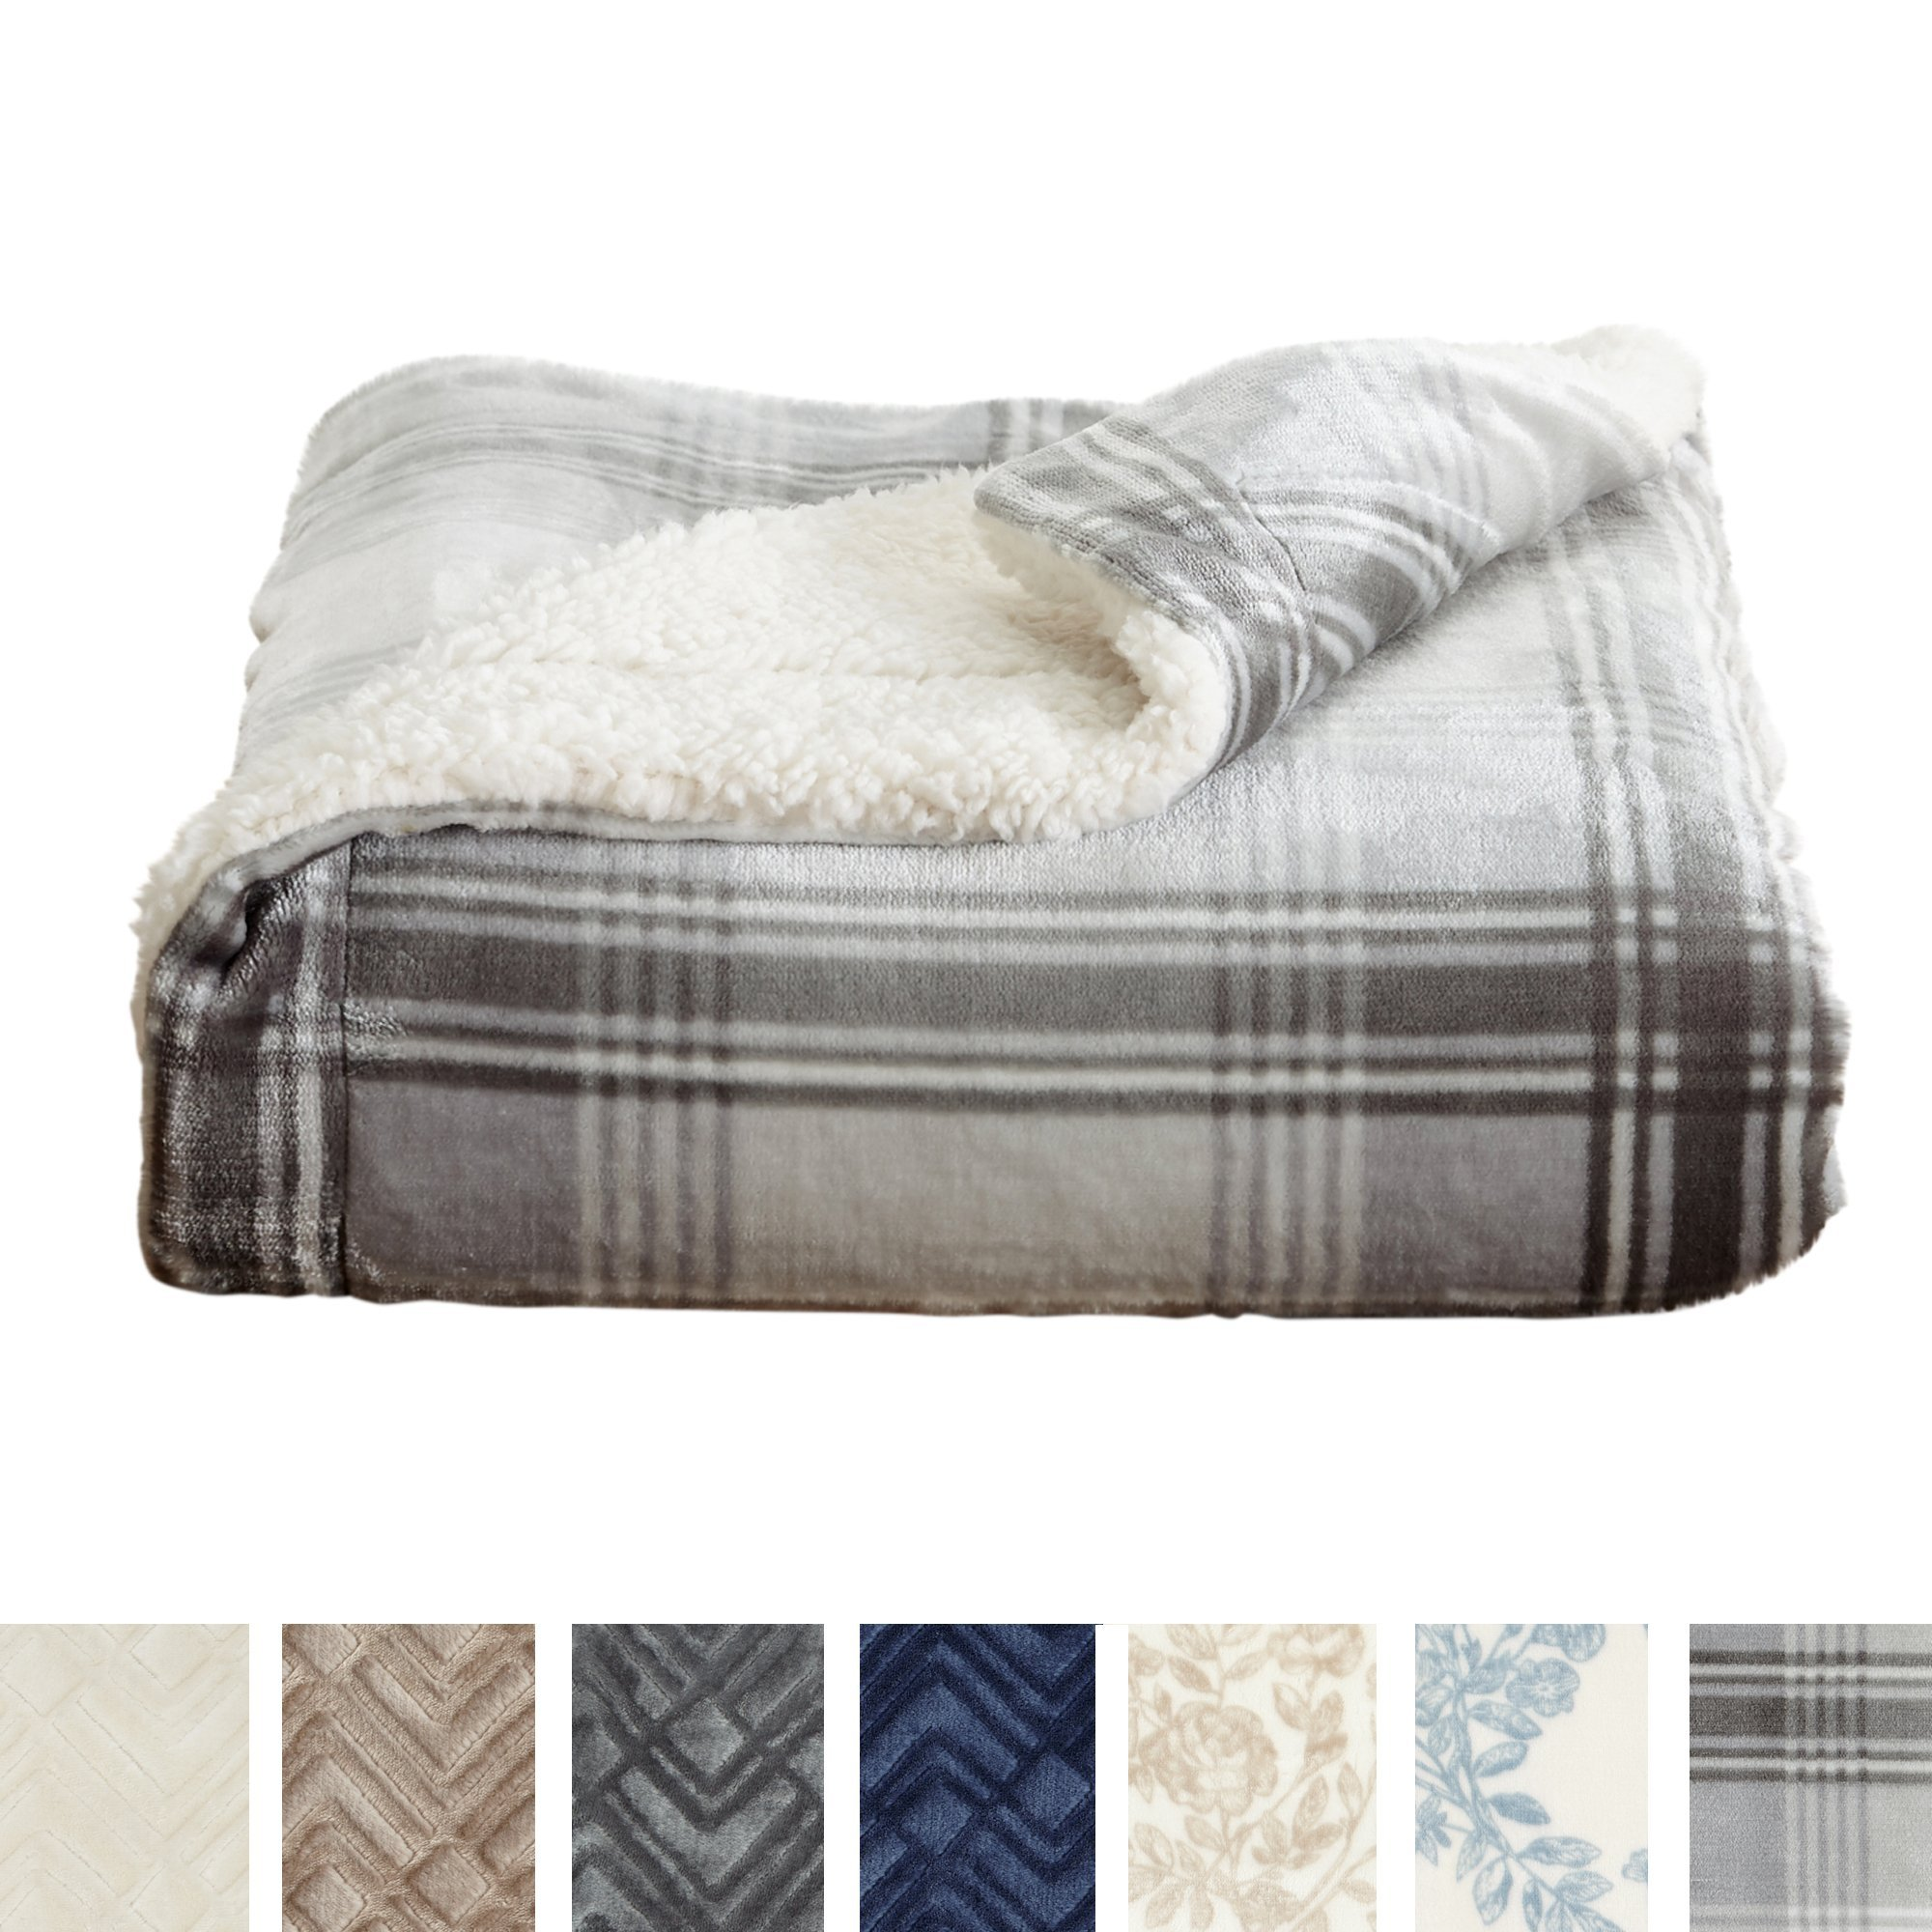 Home Fashion Designs Premium Reversible Berber and Sculpted Velvet Plush Luxury Blanket. High-End, Soft, Warm Sherpa Bed Blanket. By Brand. (Twin, Plaid Grey)